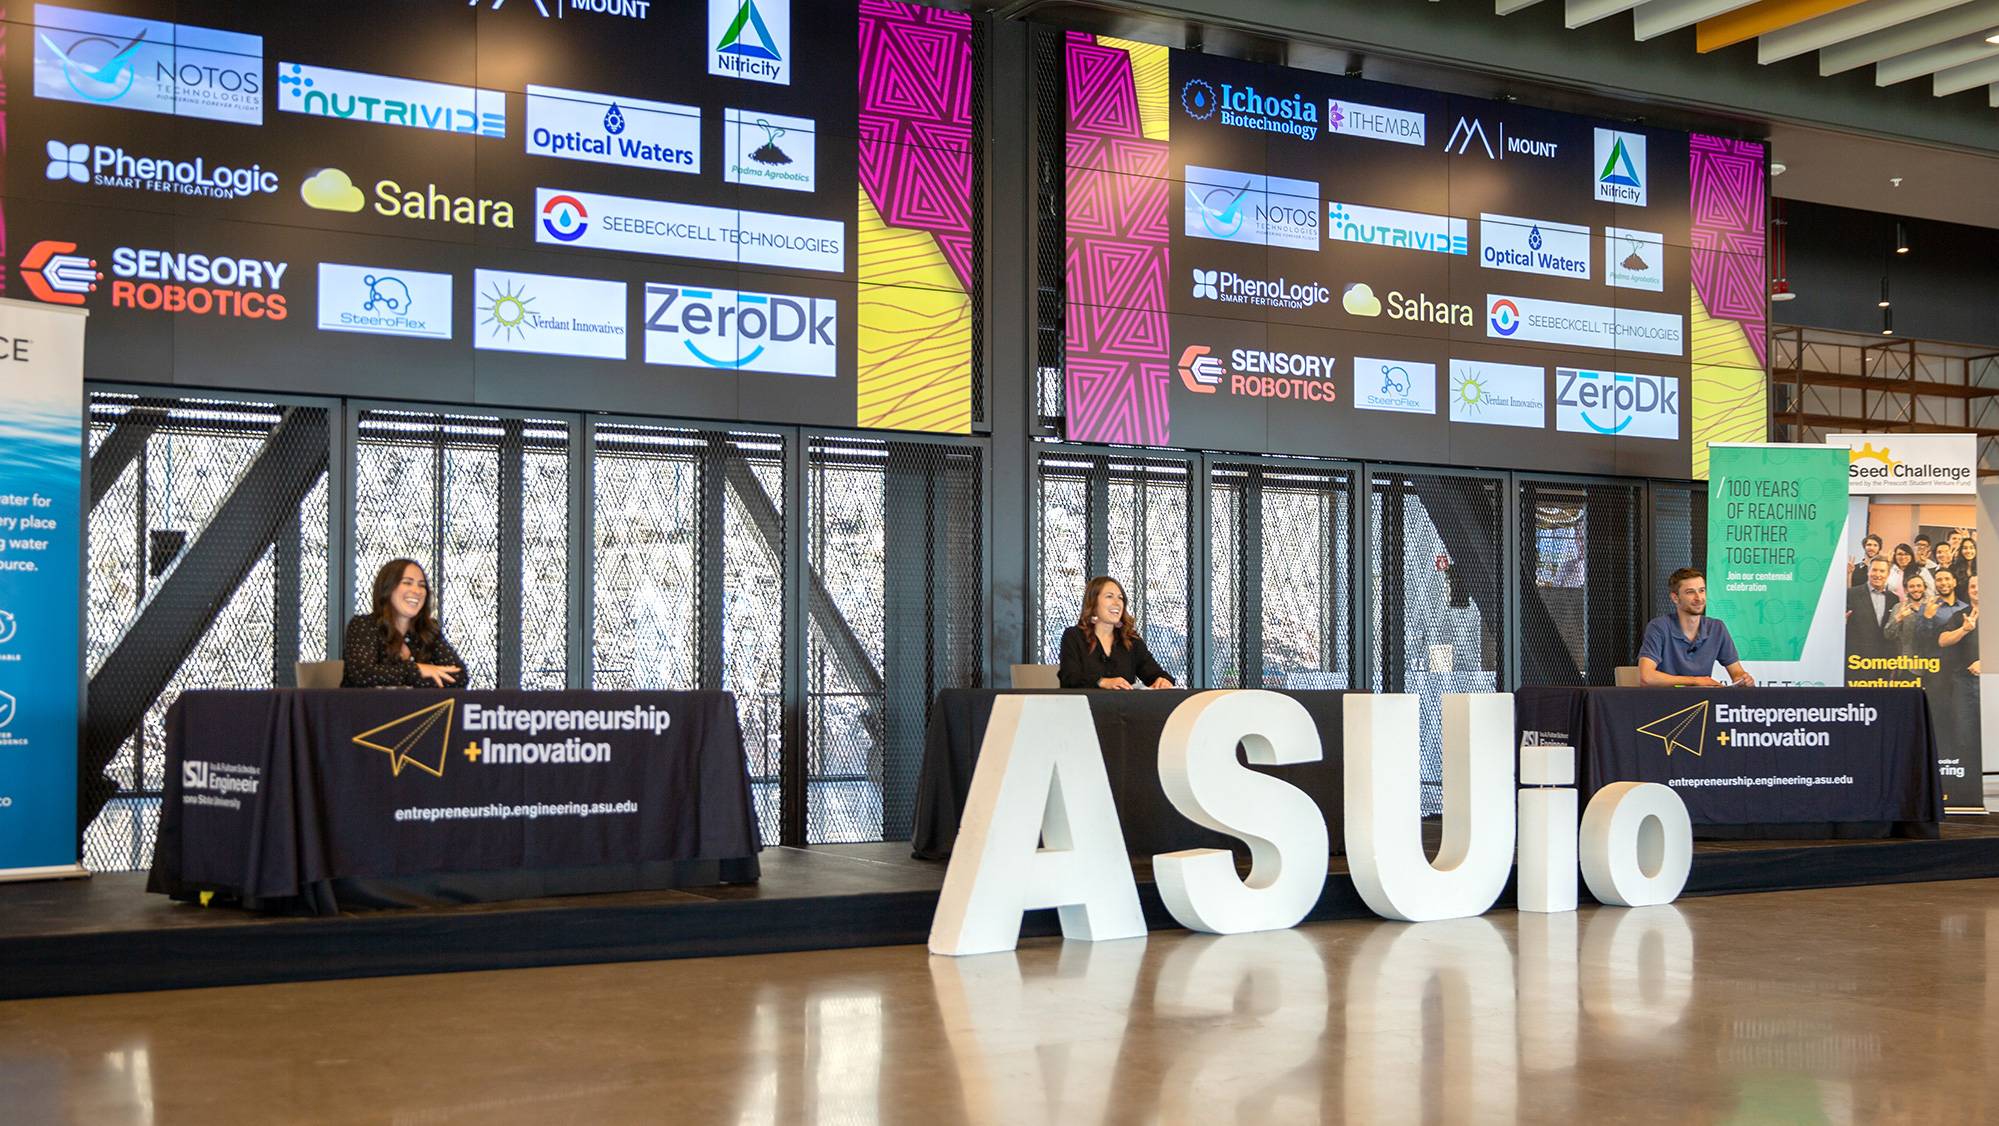 Image of the ASU.io stage during the 2021 competition.